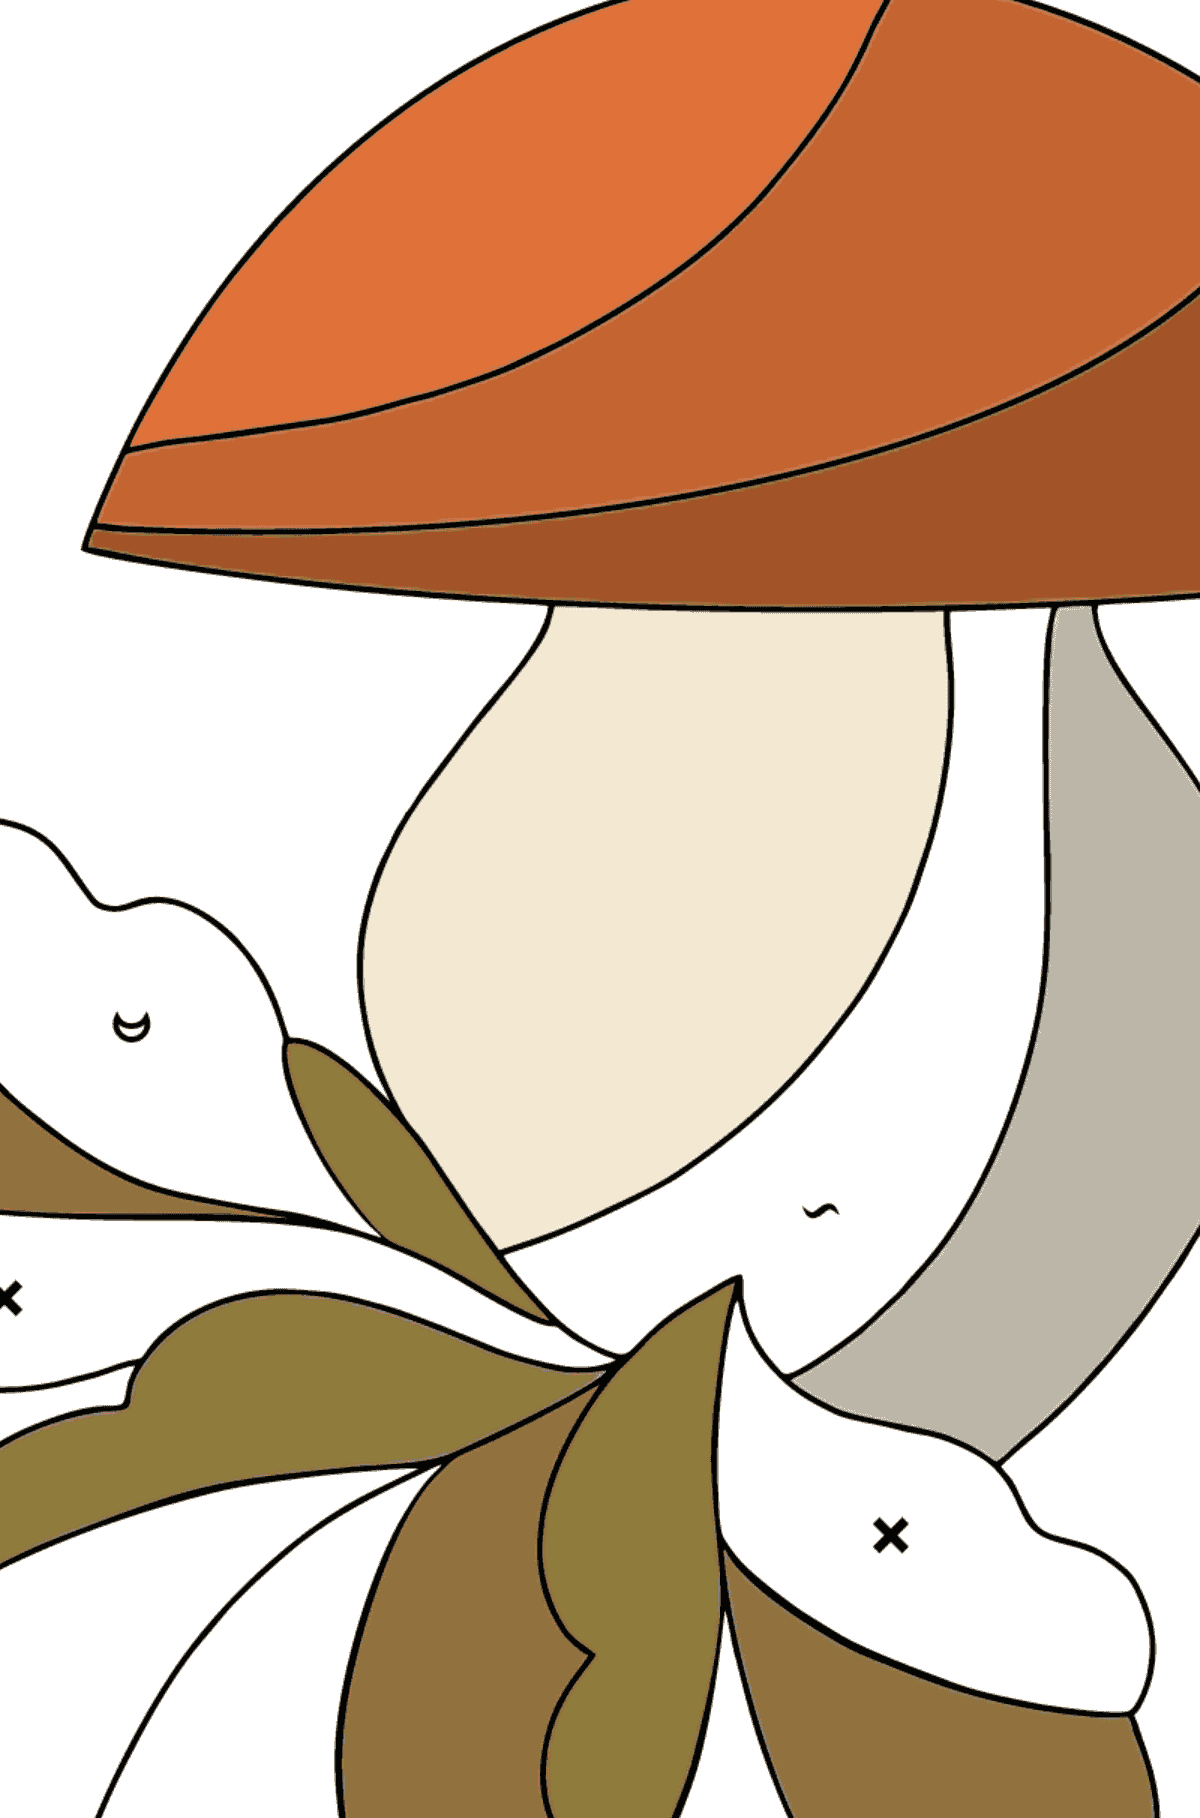 Autumn Coloring Page - Mushroom Harvest Time for Children  - Color by Special Symbols